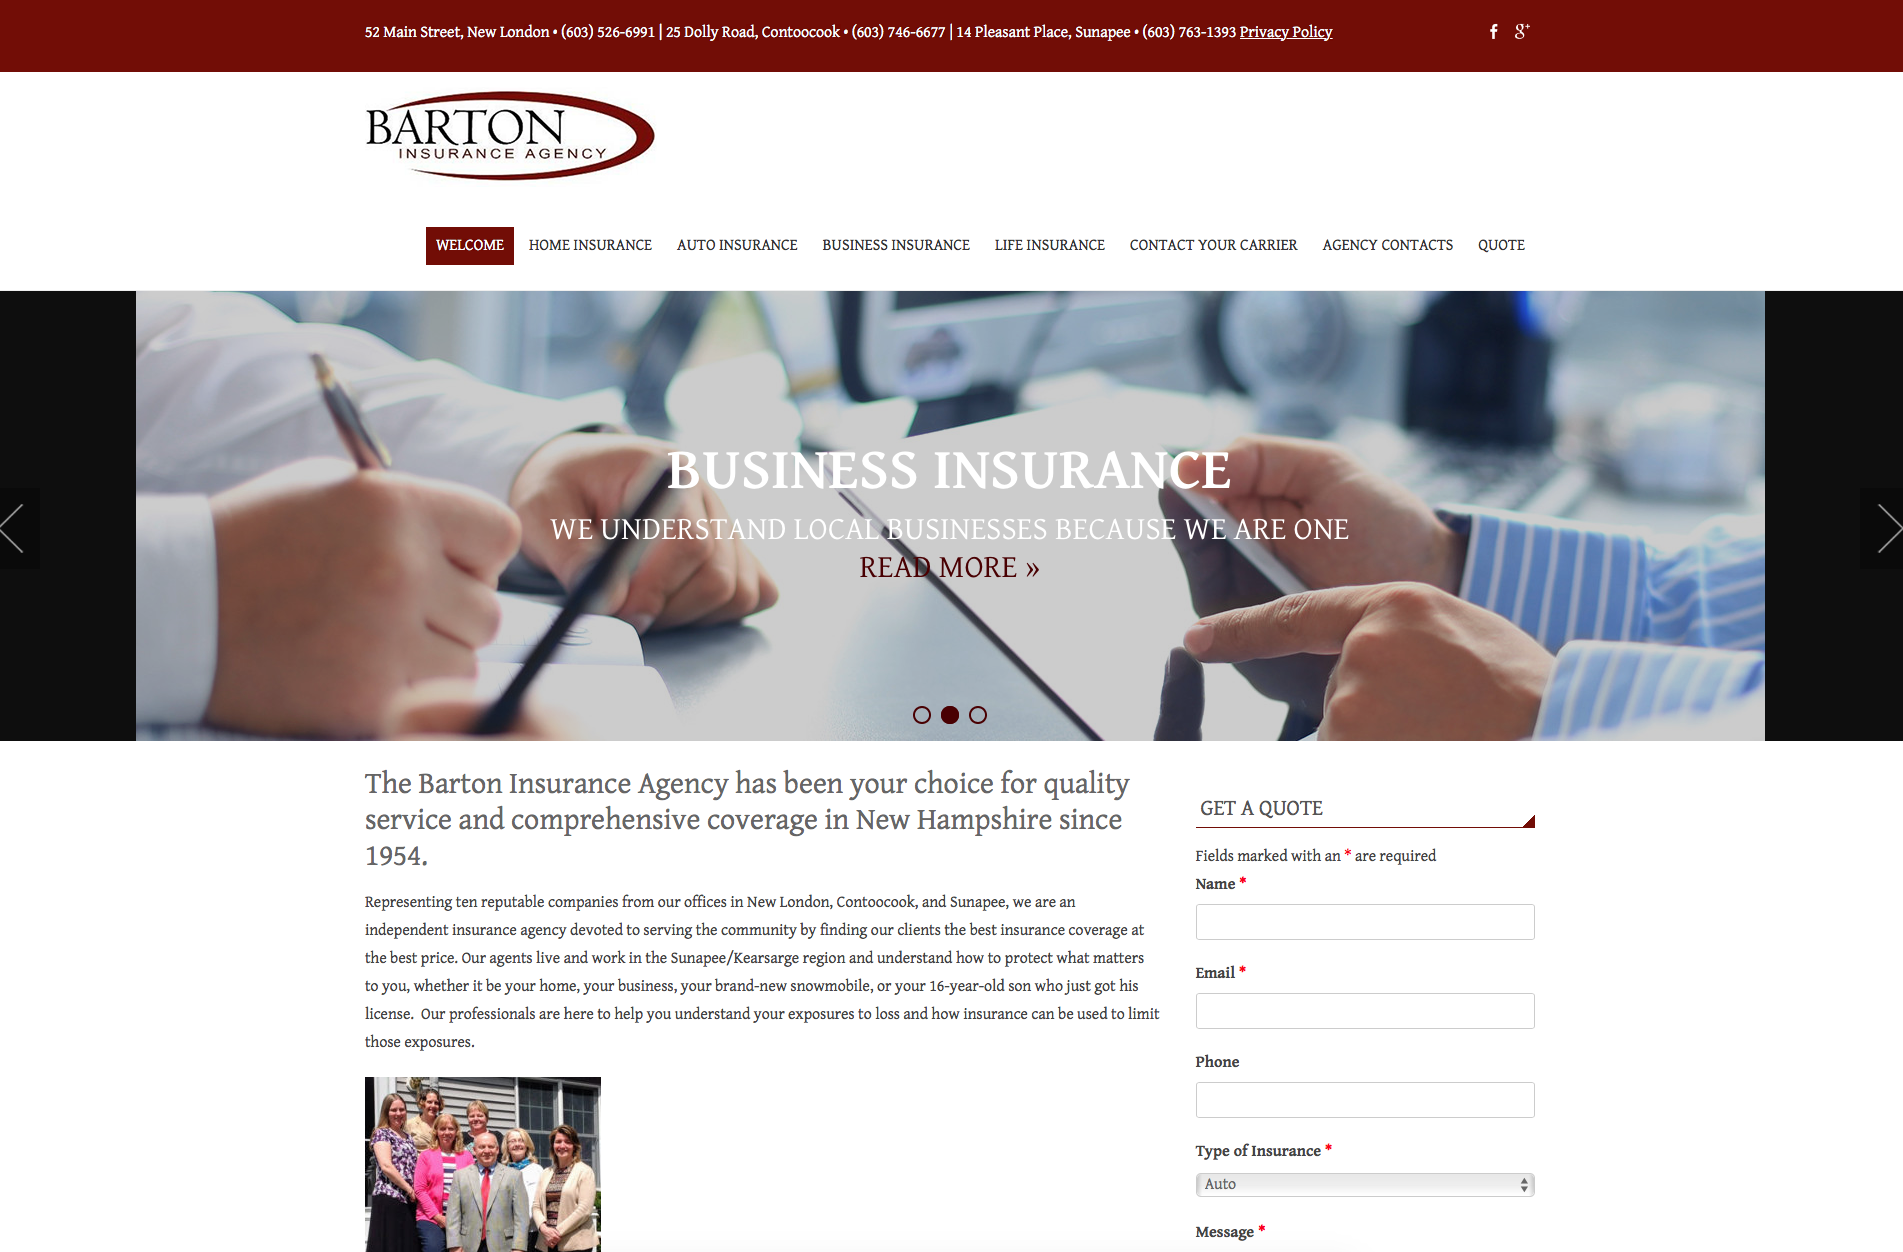 Barton Insurance Agency